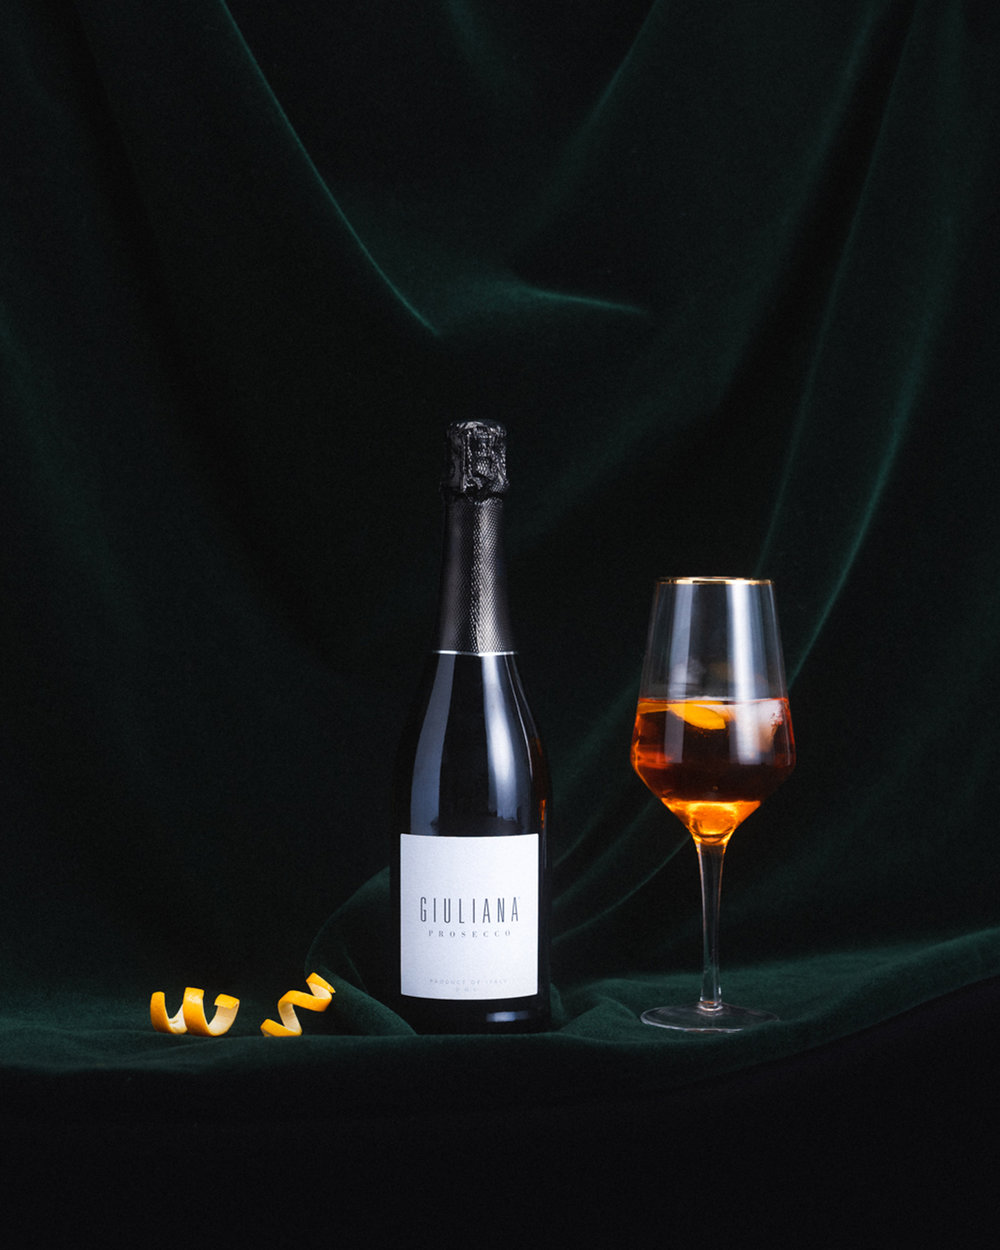 Can't pass up #WineWednesday, so pass the #GiulianaProsecco and make this spirited Harvest Spritz. It's the perfect cocktail to start off your holiday season!